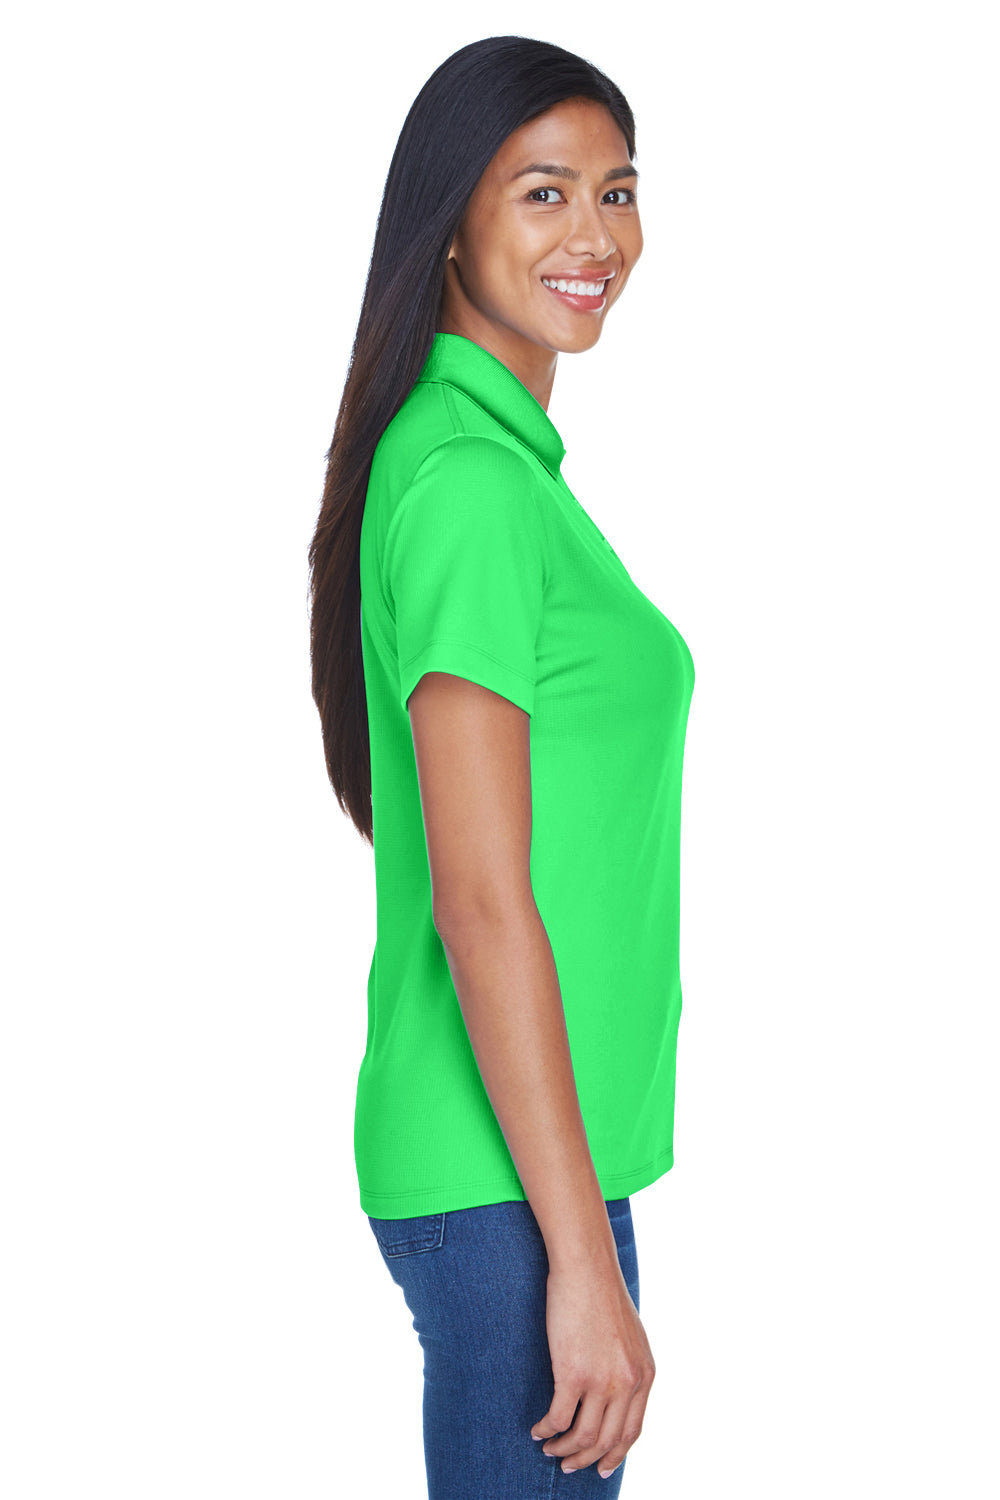 UltraClub 8445L Womens Cool & Dry Performance Moisture Wicking Short Sleeve Polo Shirt Cool Green Side